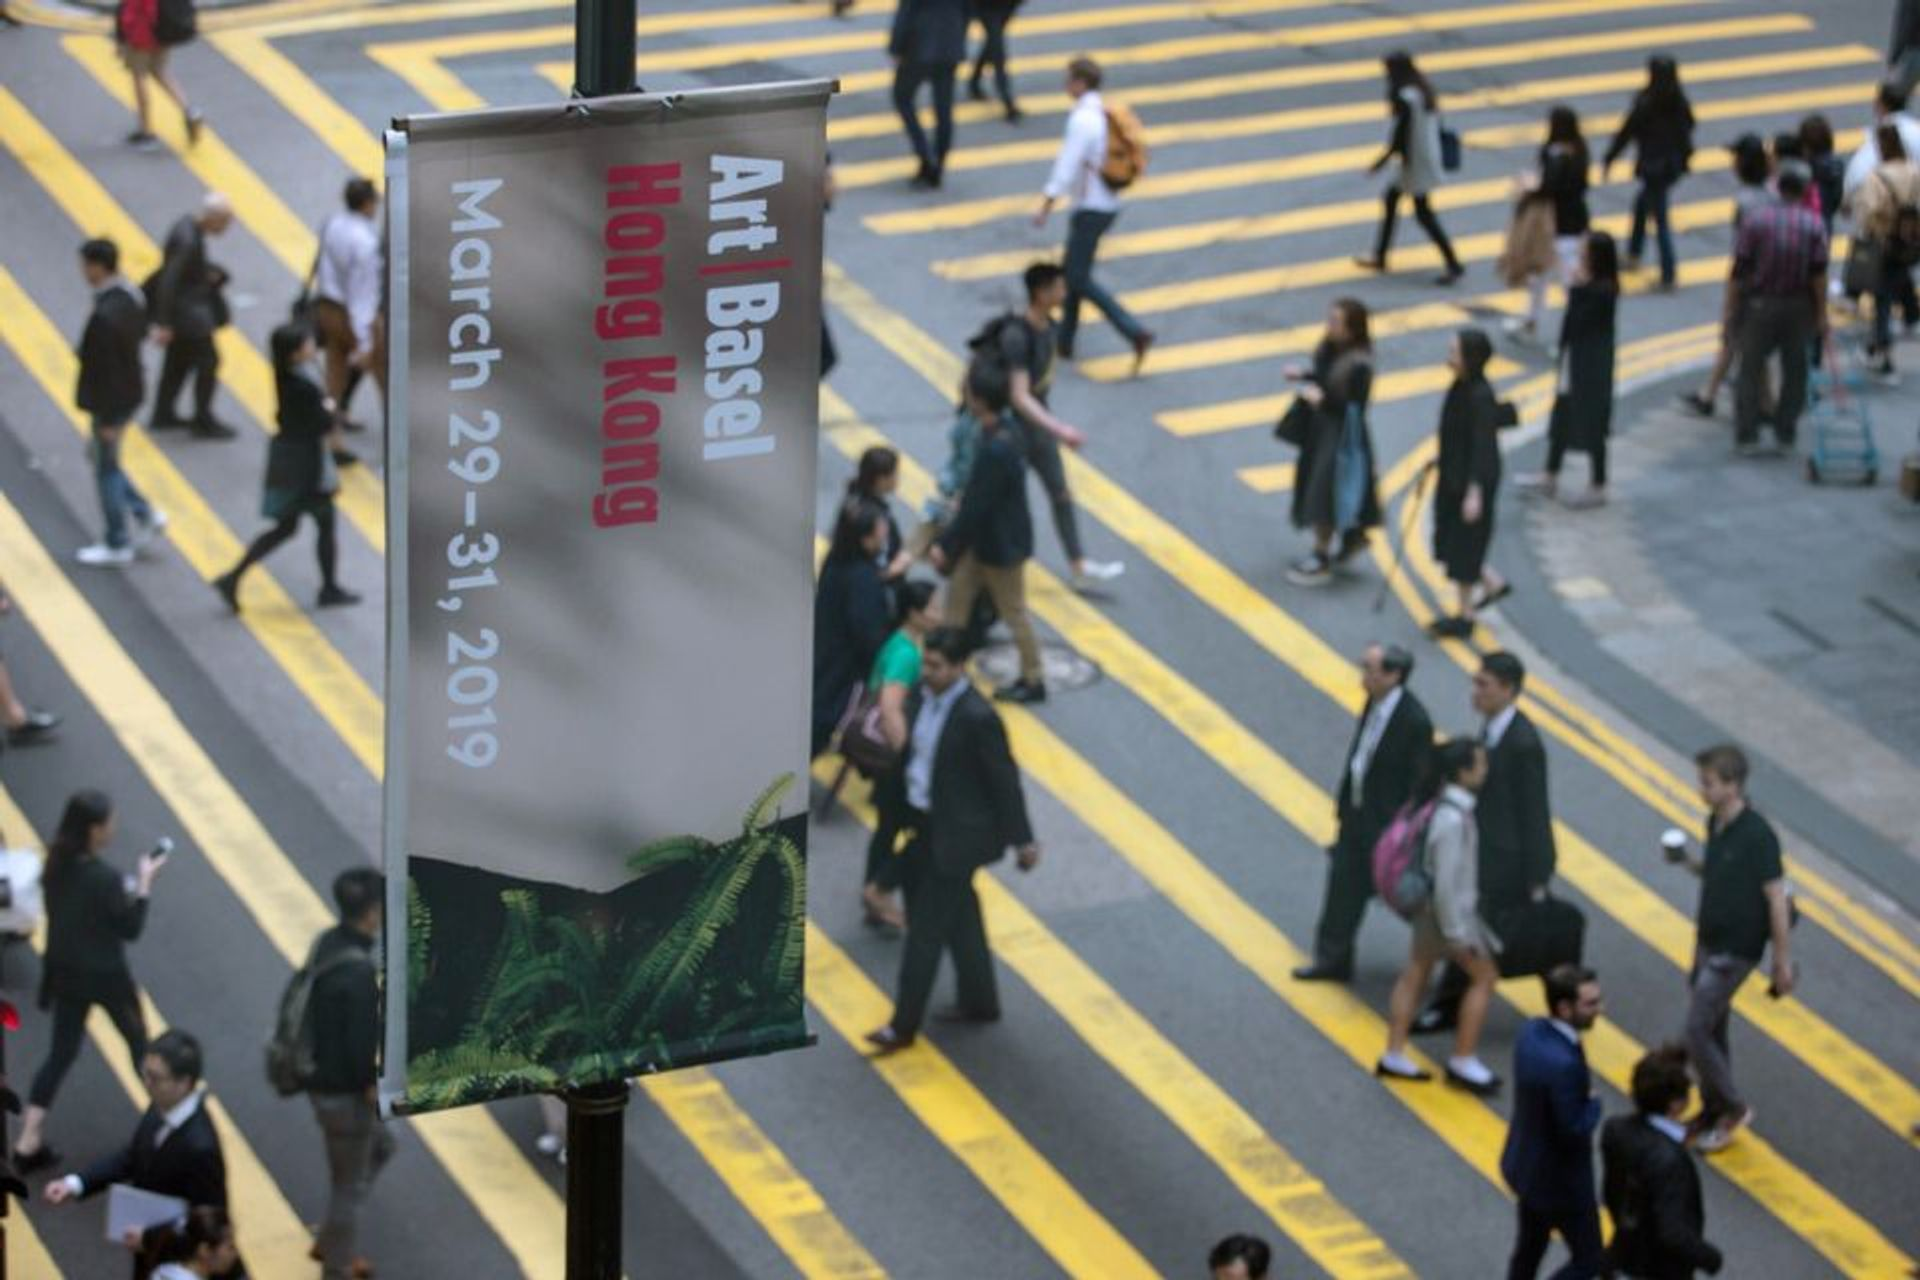 Art Basel in Hong Kong The 2020 edition of Art Basel in Hong Kong is on shaky ground after the coronavirus outbreak © Art Basel